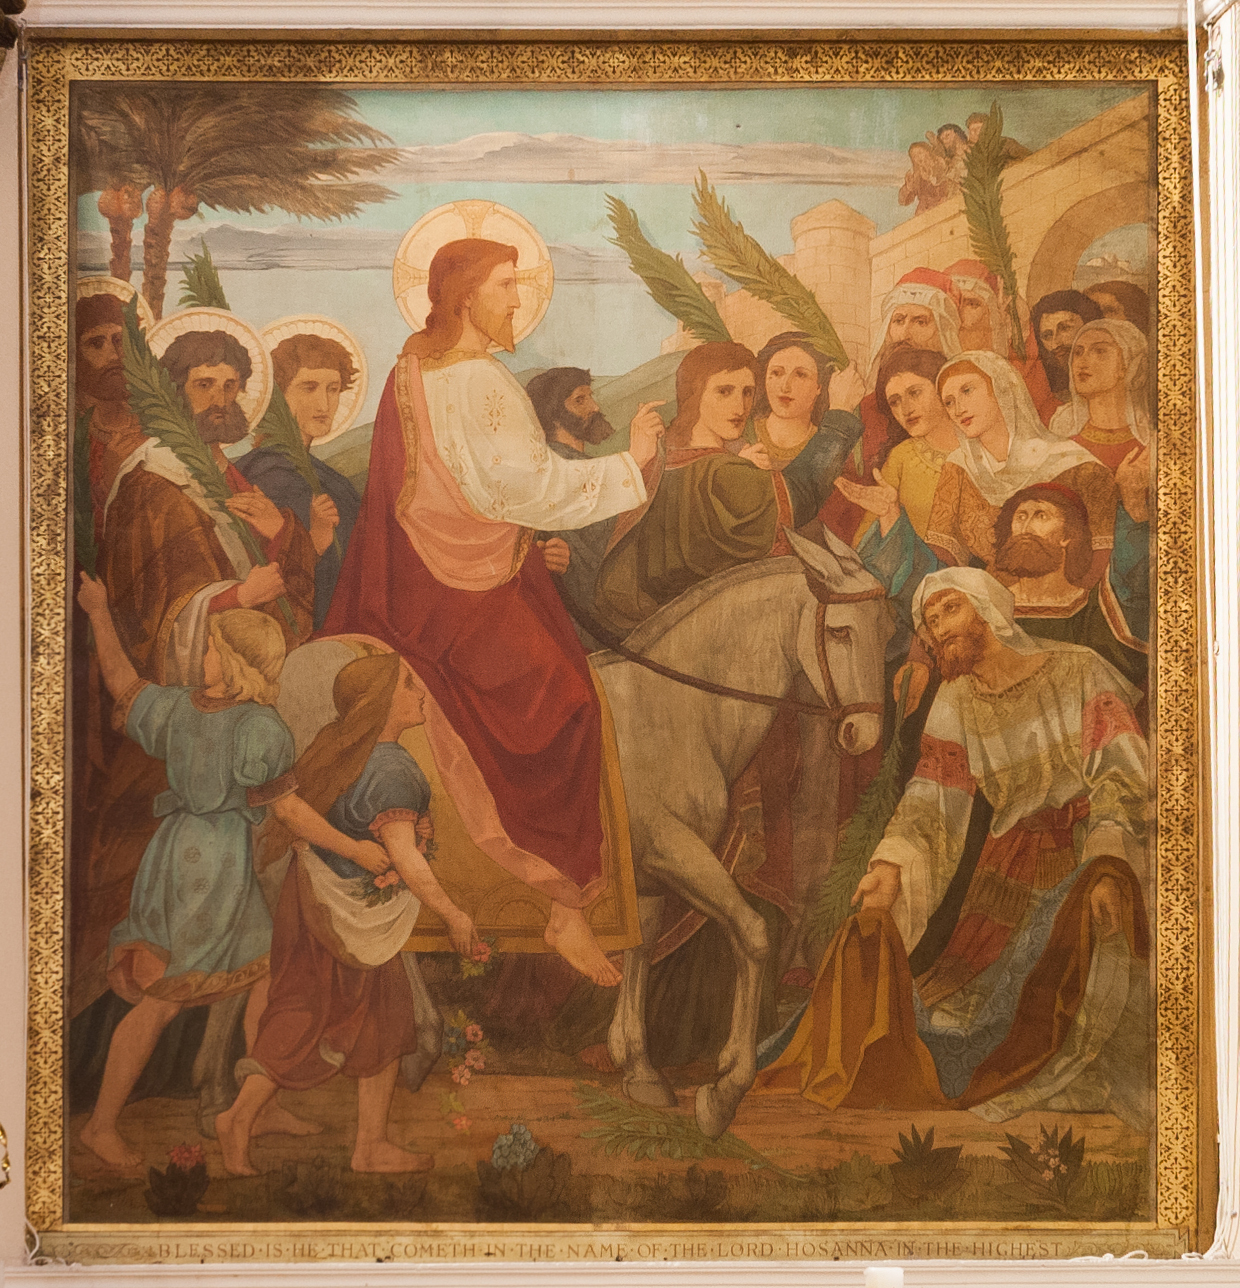 "Belfast_St_Georges_Church_Sanctuary_Painting_by_Alexander_Gibbs_""Blessed_is_he_that_cometh_in_the_name_of_the_Lord._Hosanna_in_the_Highest.""_2018_08_24"